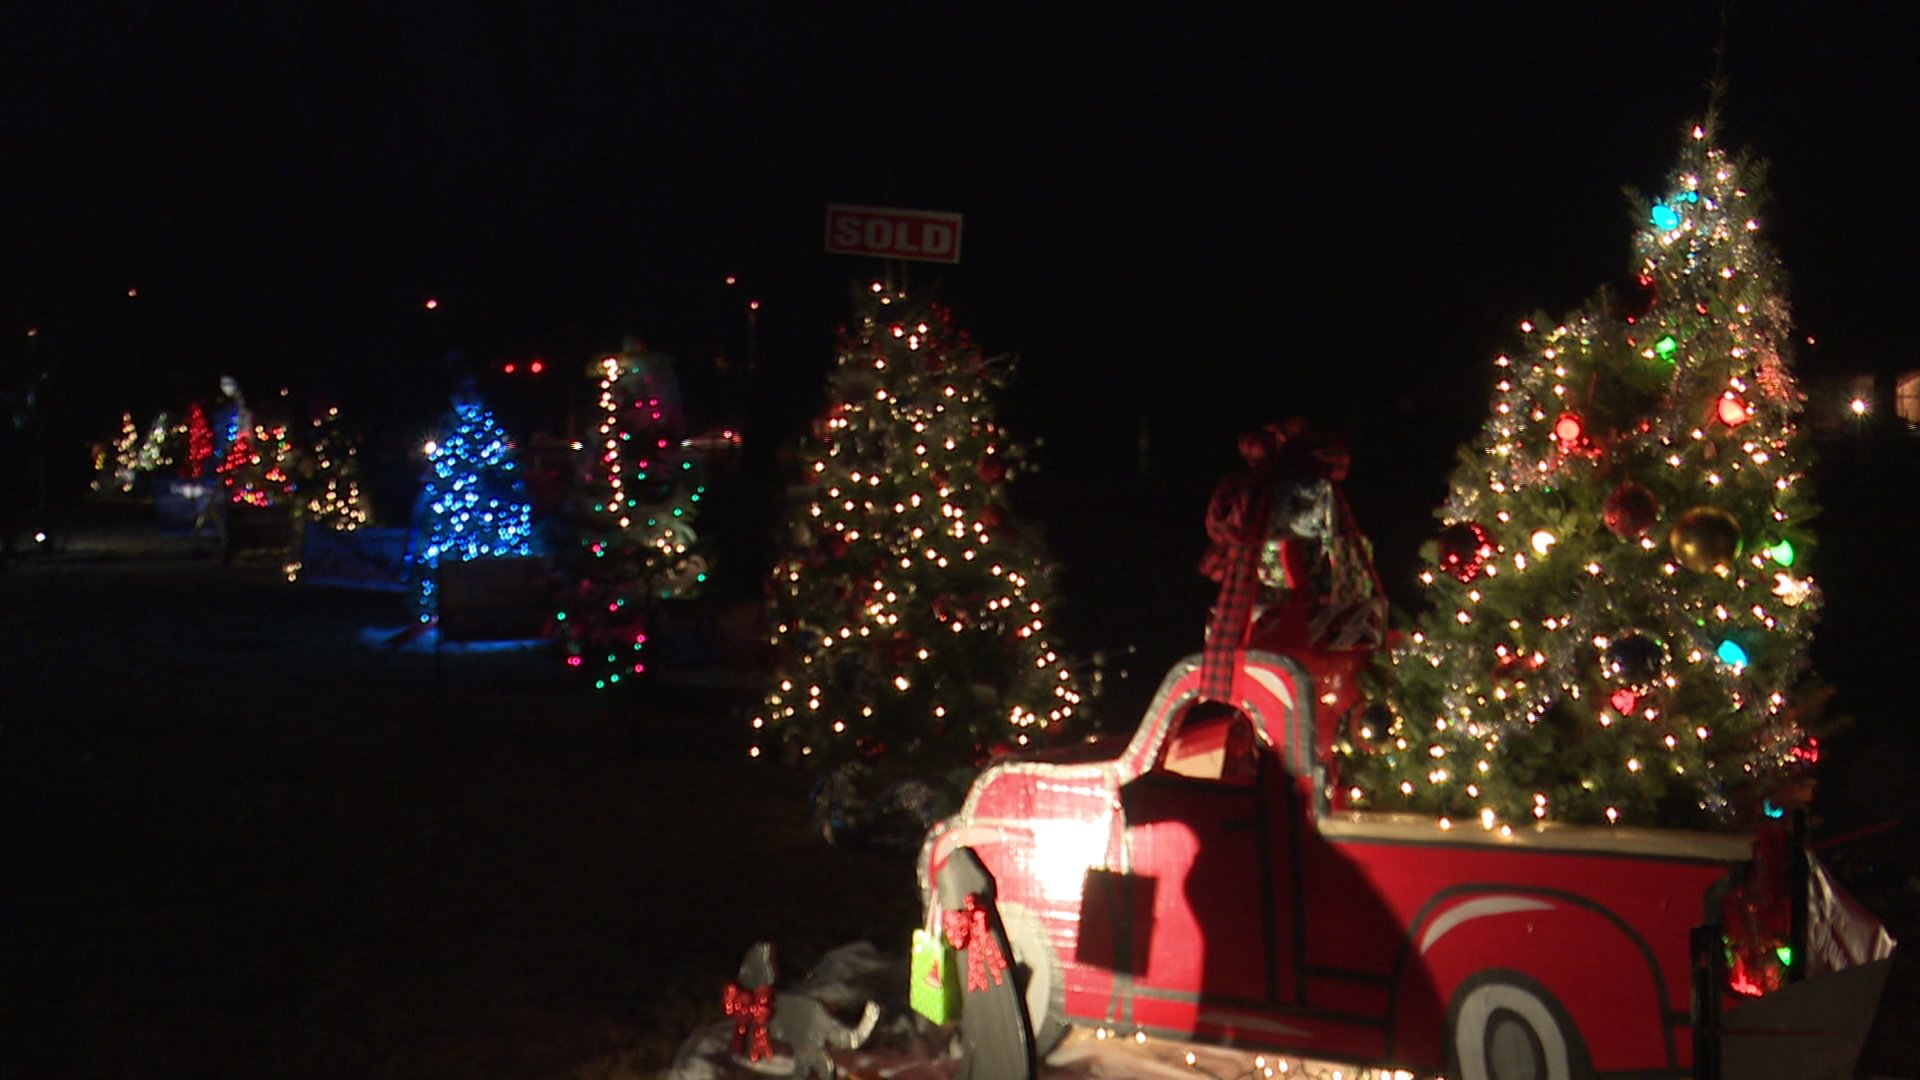 Somerville Christmas Parade 2020 Madison cancels annual Christmas parade | WHNT.com